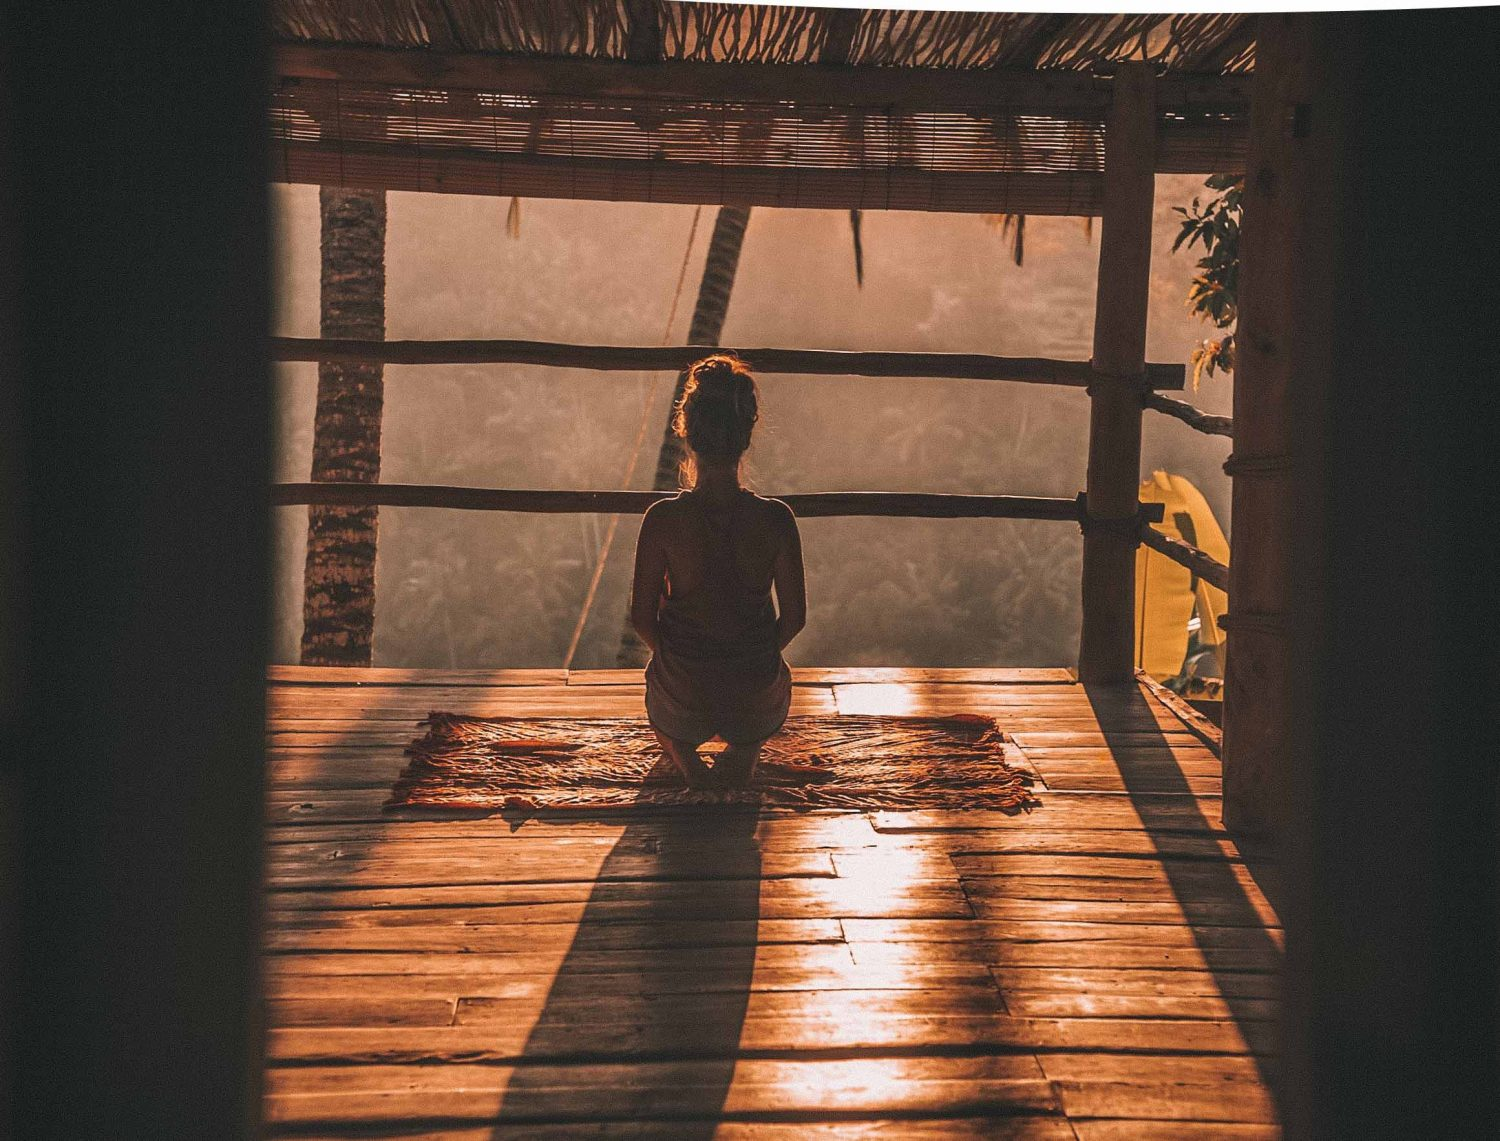 The Most Common Meditation Practice Mistakes Fixed